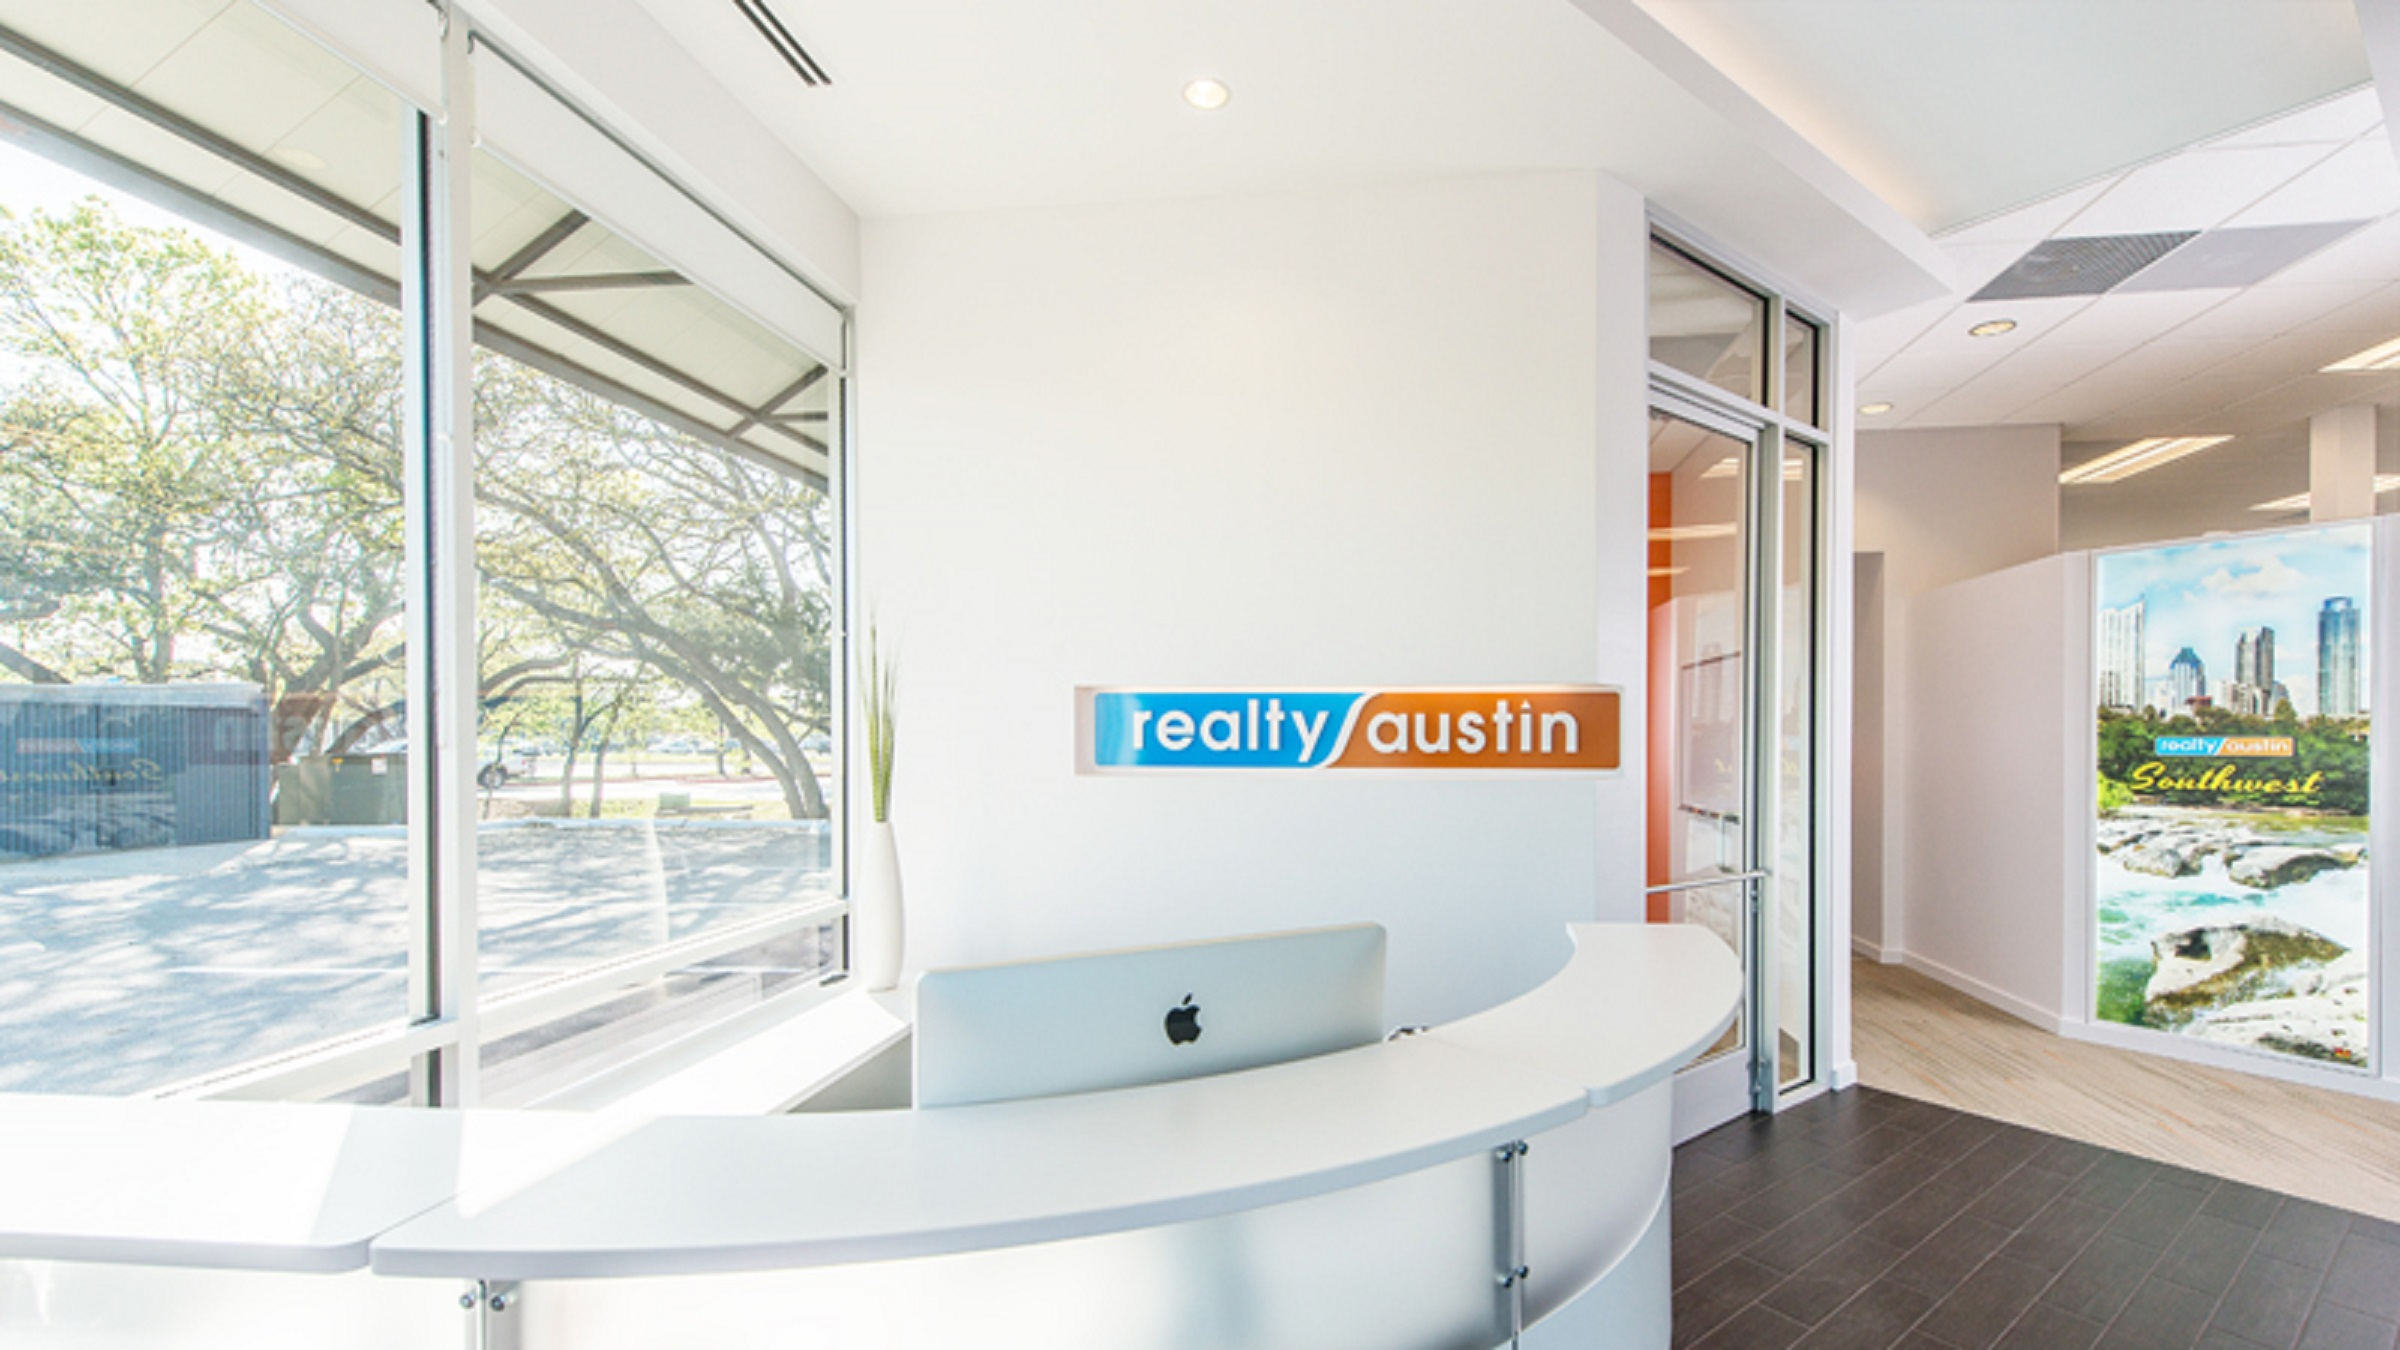 realty-austin-reception-arbor trails